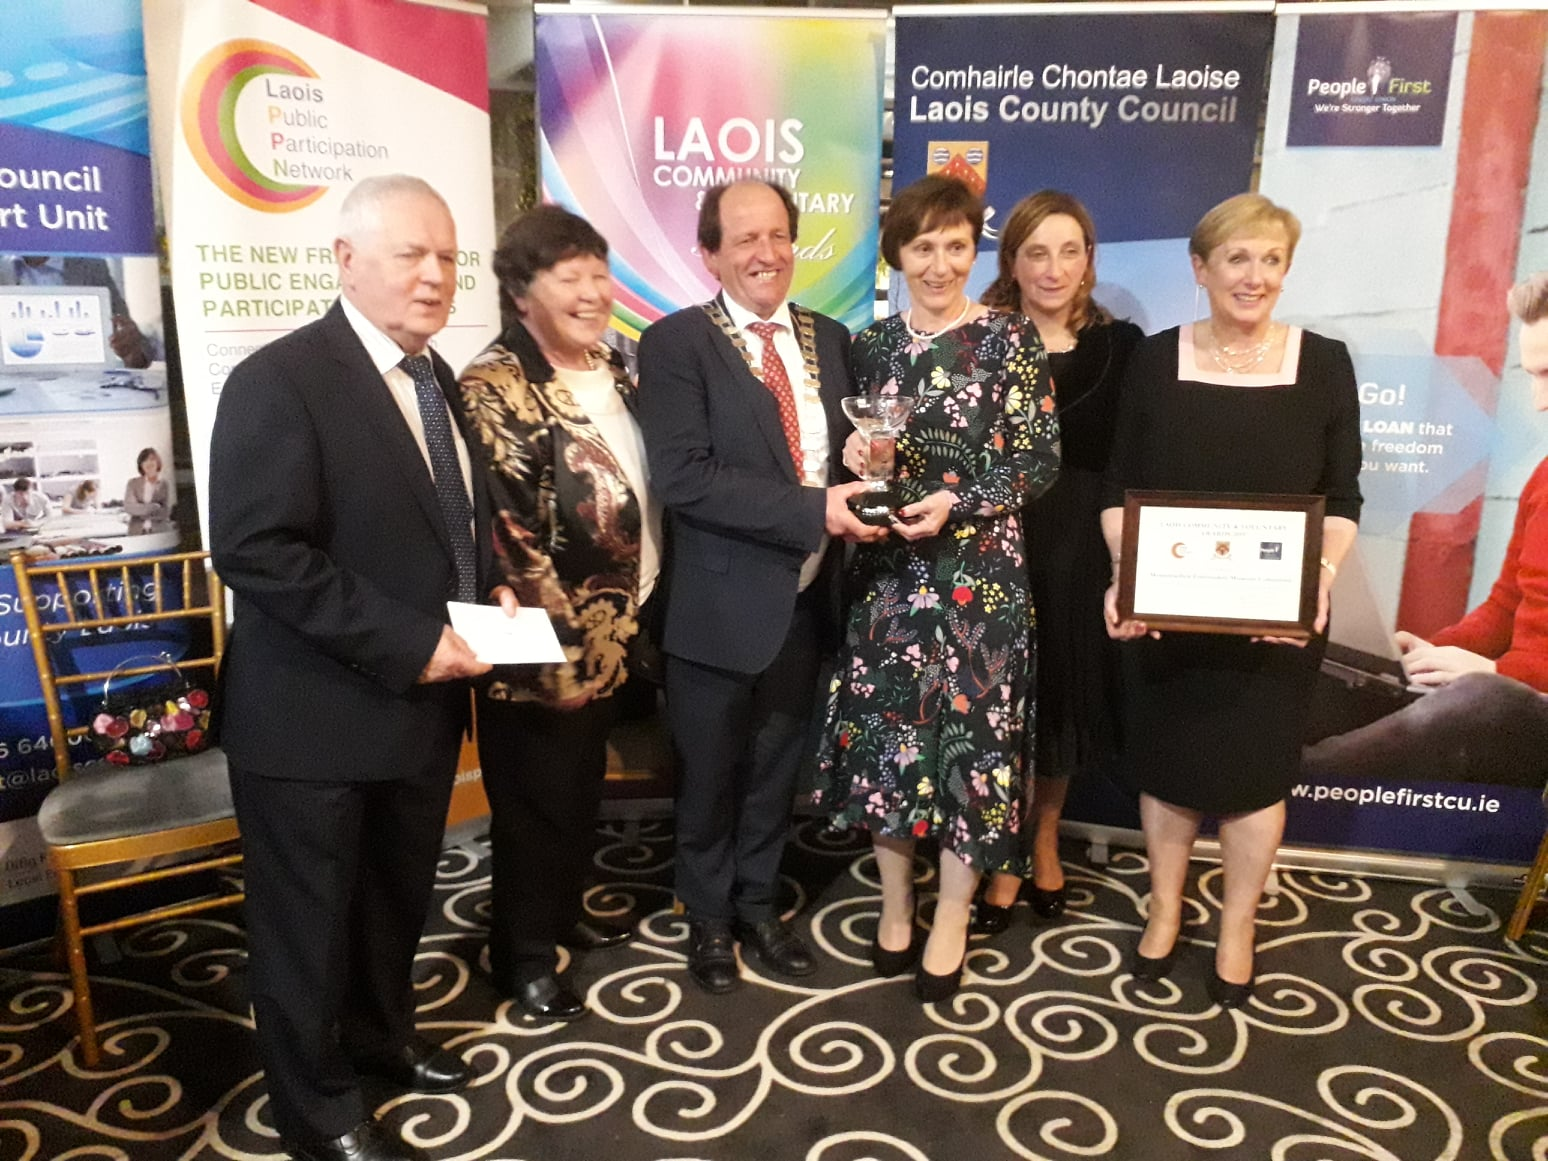 laois-community--voluntary-awards-arts-culture-and-heritage-award-category